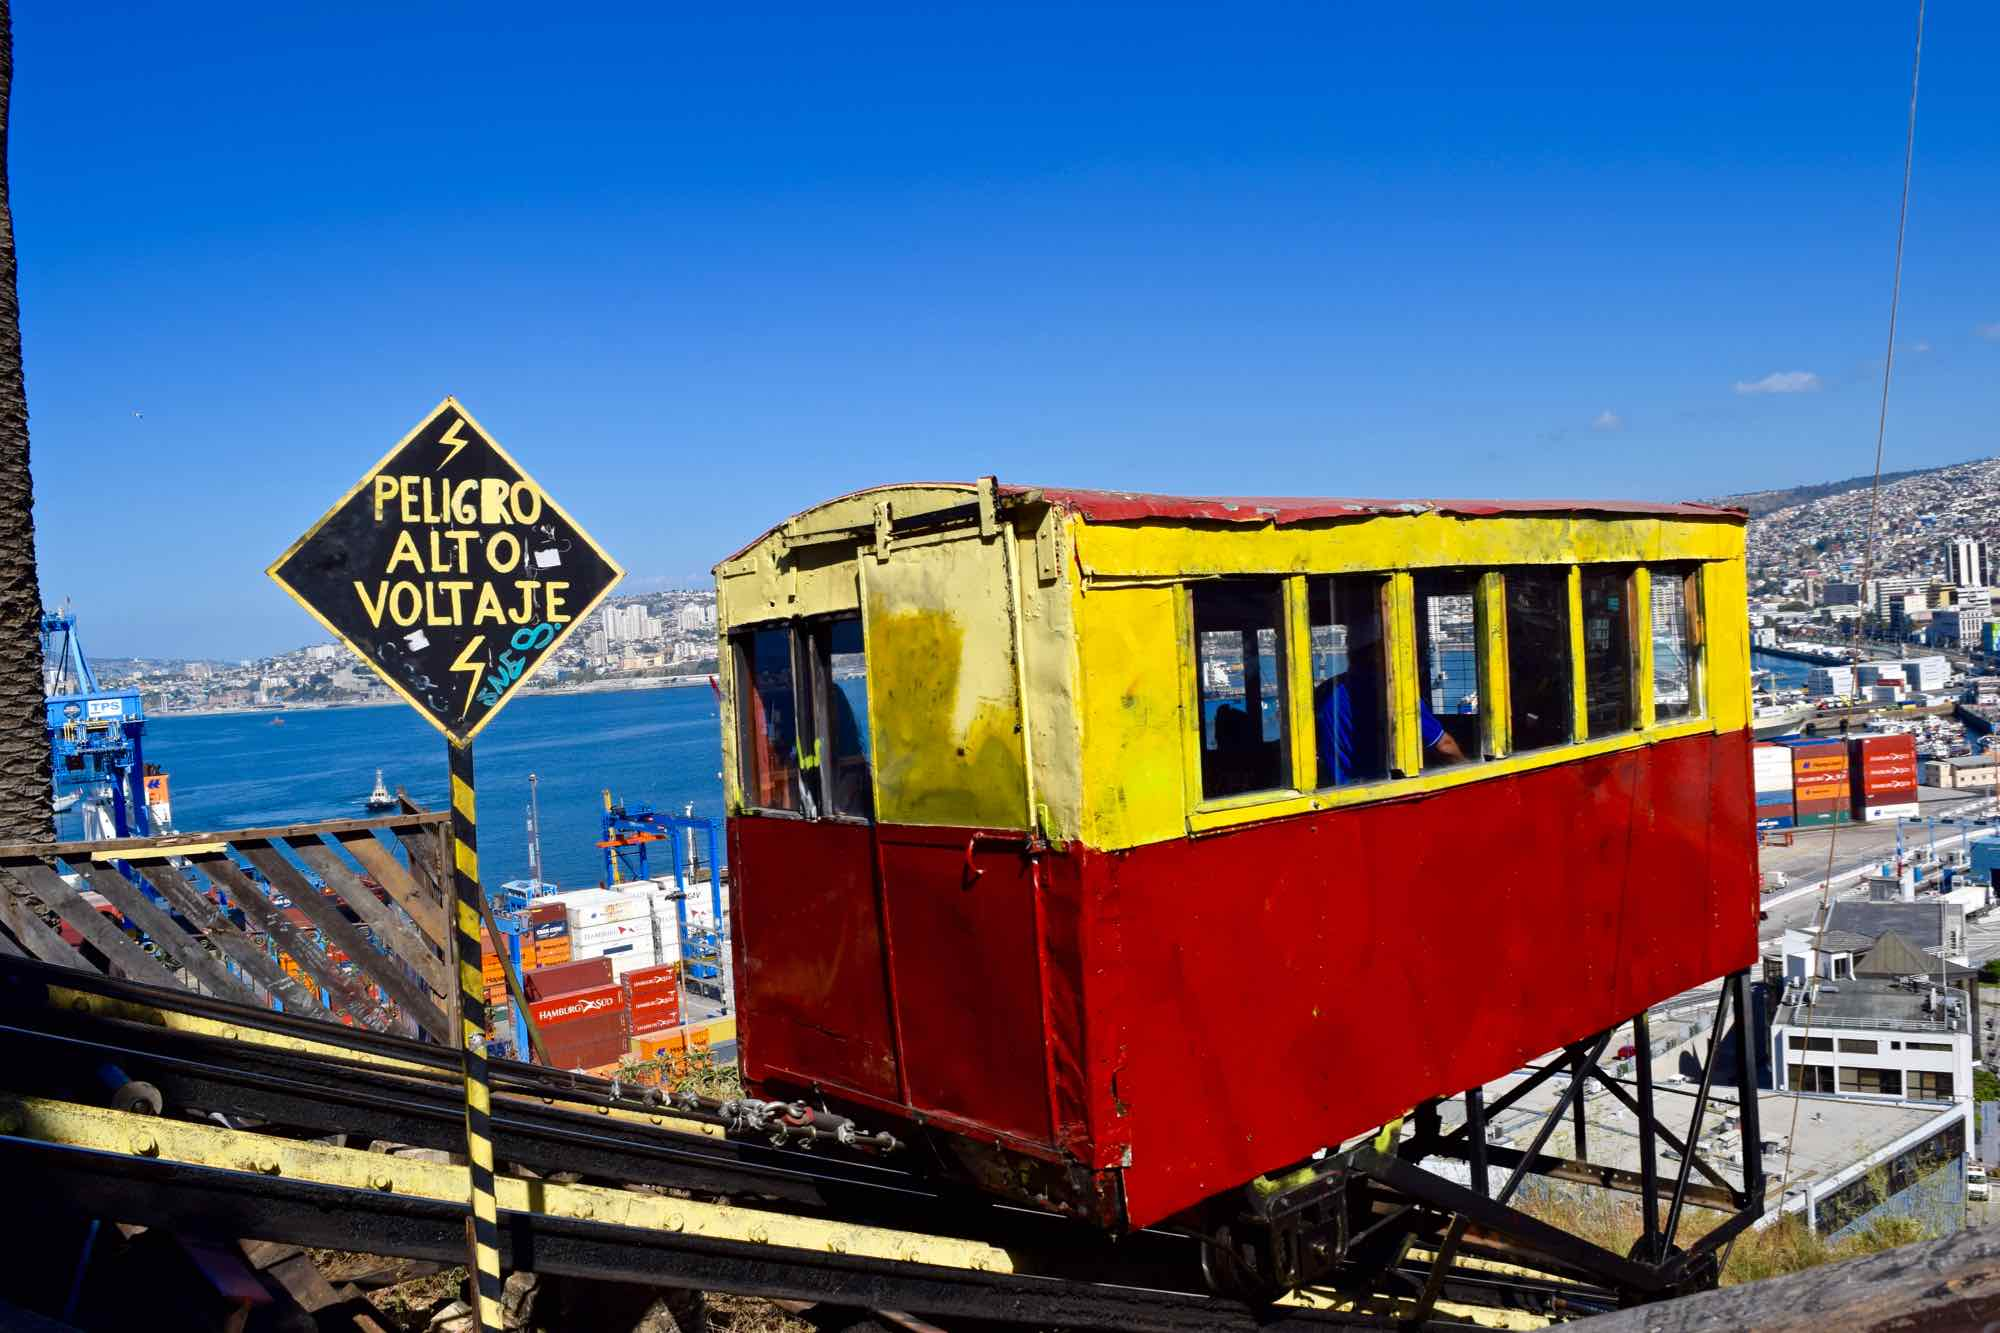 Things To Do In Valparaiso Chile Updated 2019 Food Art And More